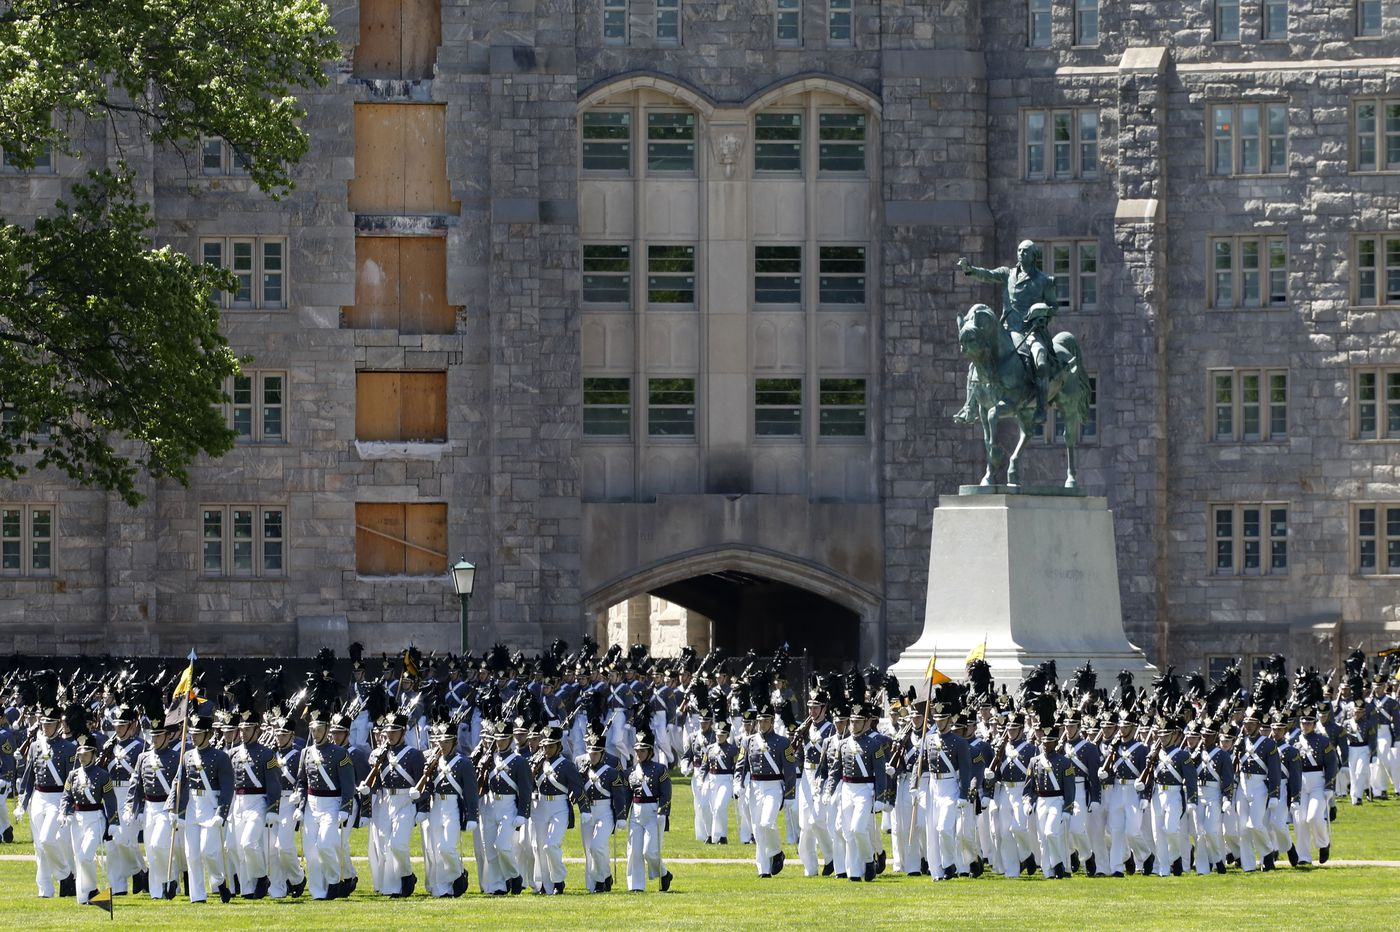 West Point cadet found dead on campus after massive four-day search